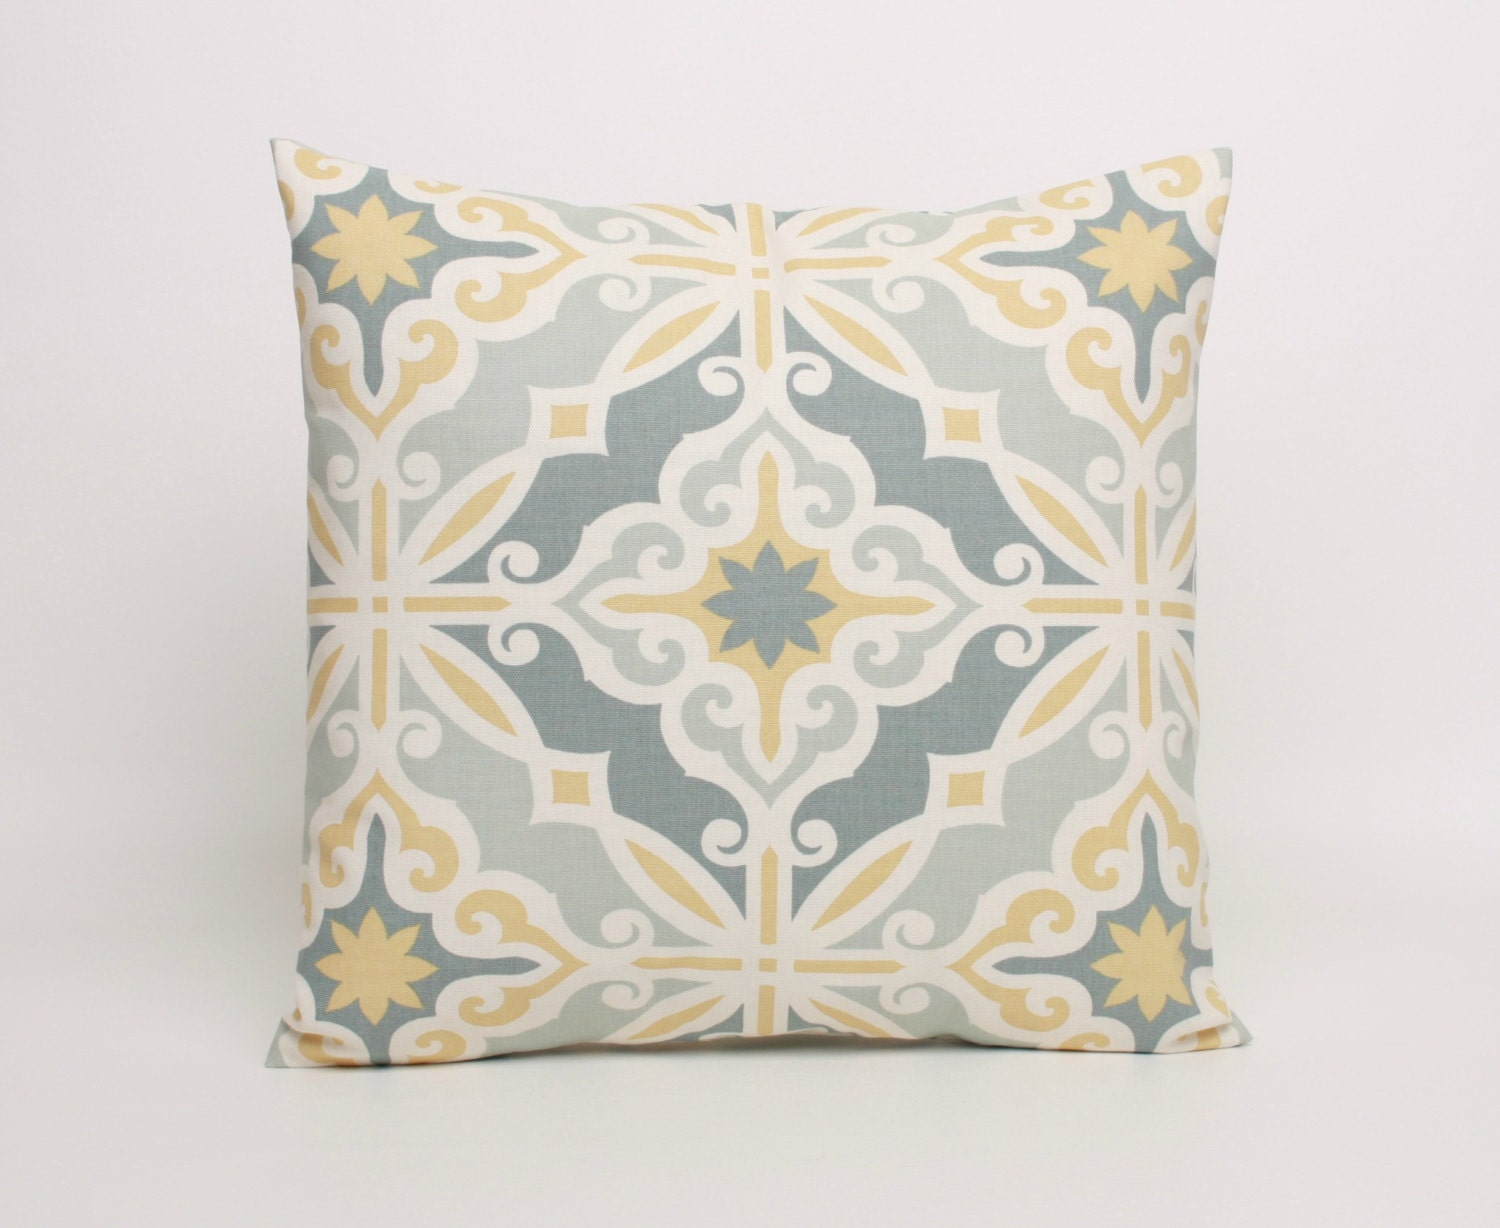 Yellow and Gray Throw Pillow Cover 22x22 by DimensionsHomeDecor